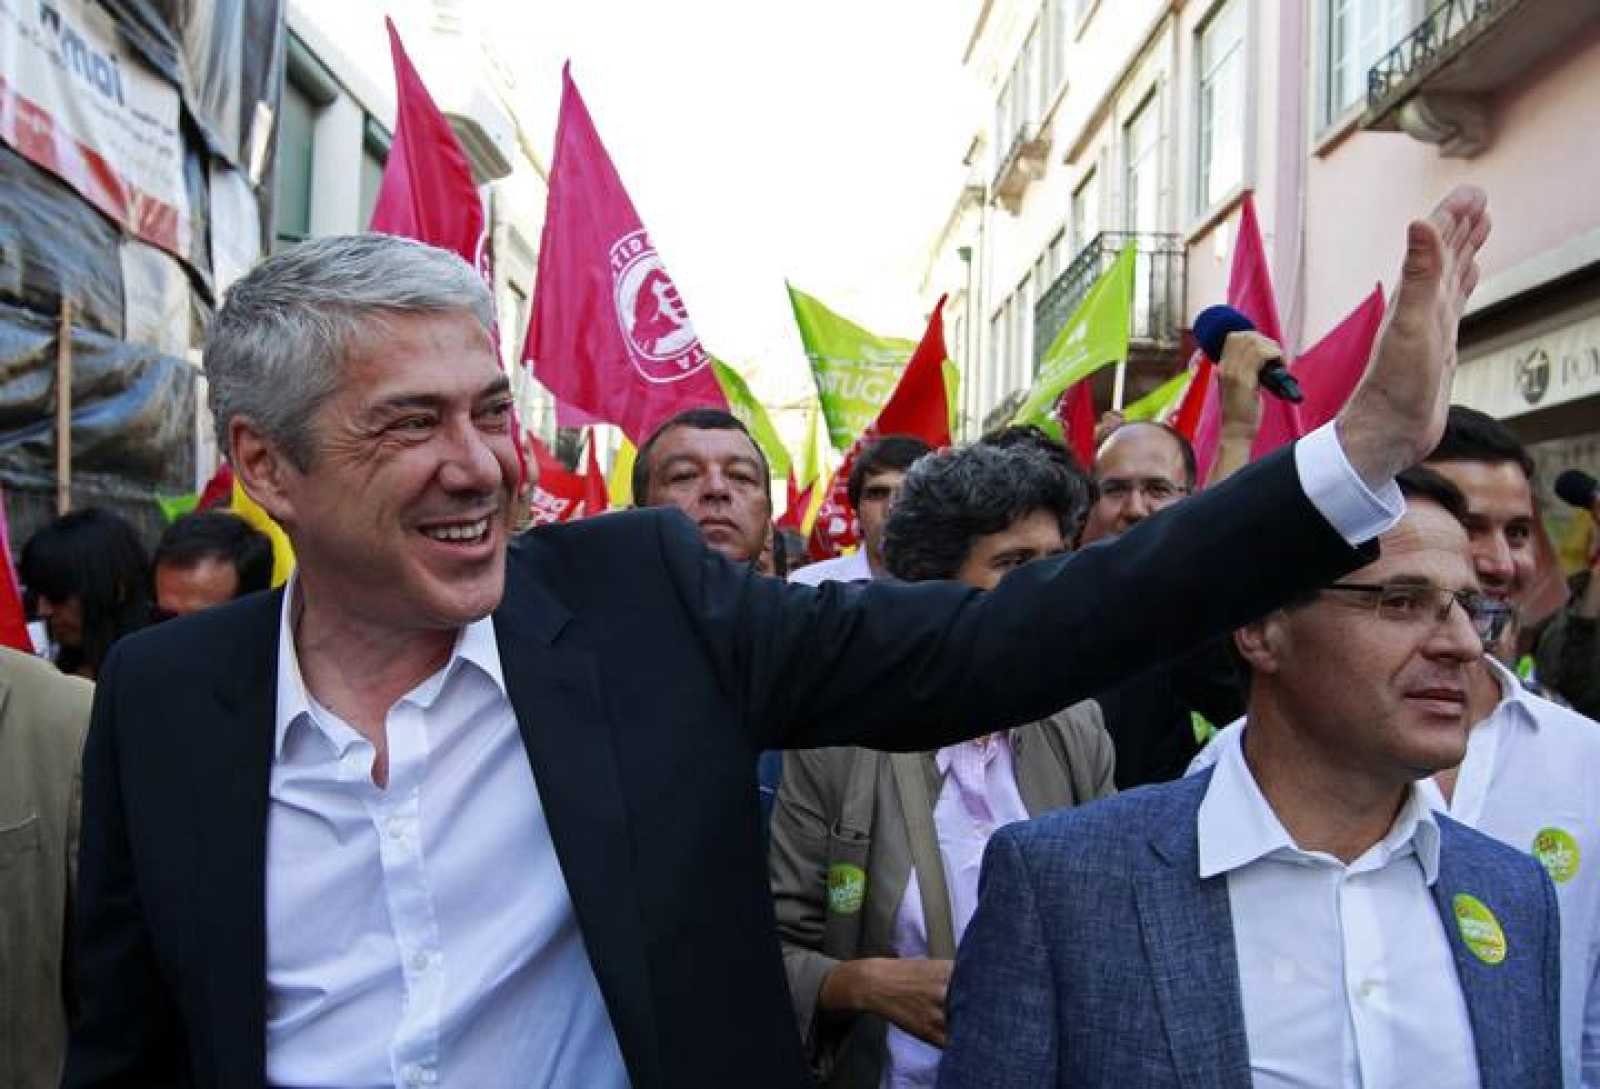 Portugal's Socialist candidate and caretaker Prime Minister Jose Socrates waves to his supporters during the electoral campaign in Santarem